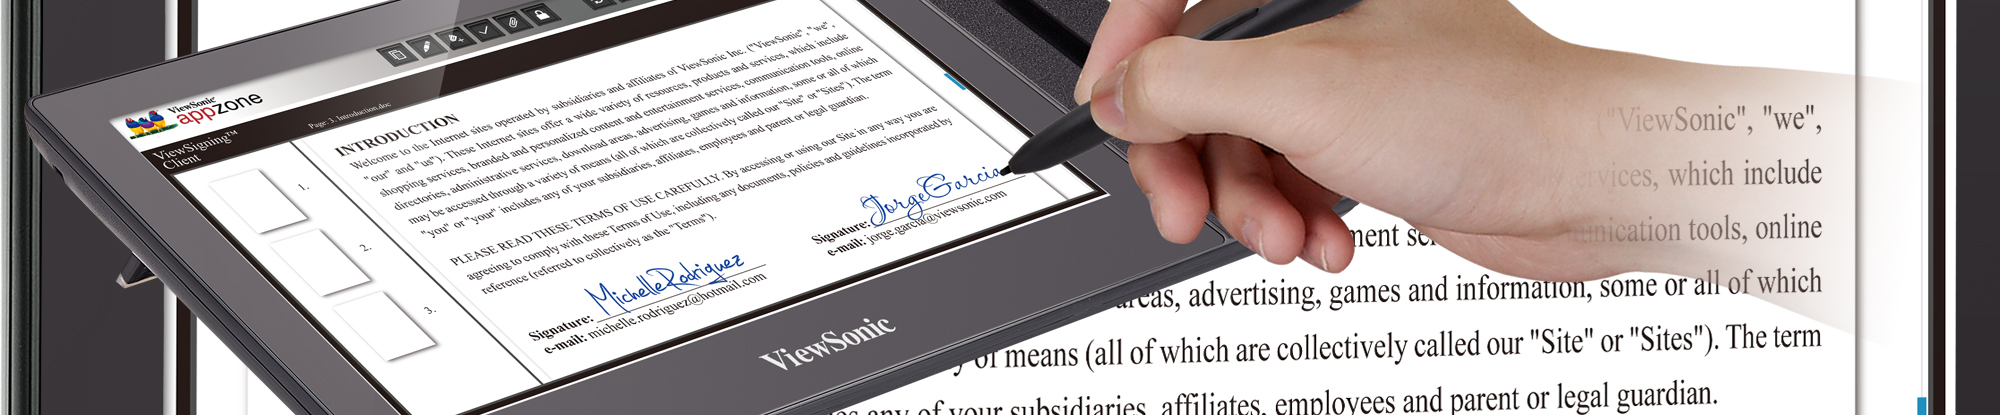 ViewSonic Introduces New Pen Display for Easy and Accurate E-Signing